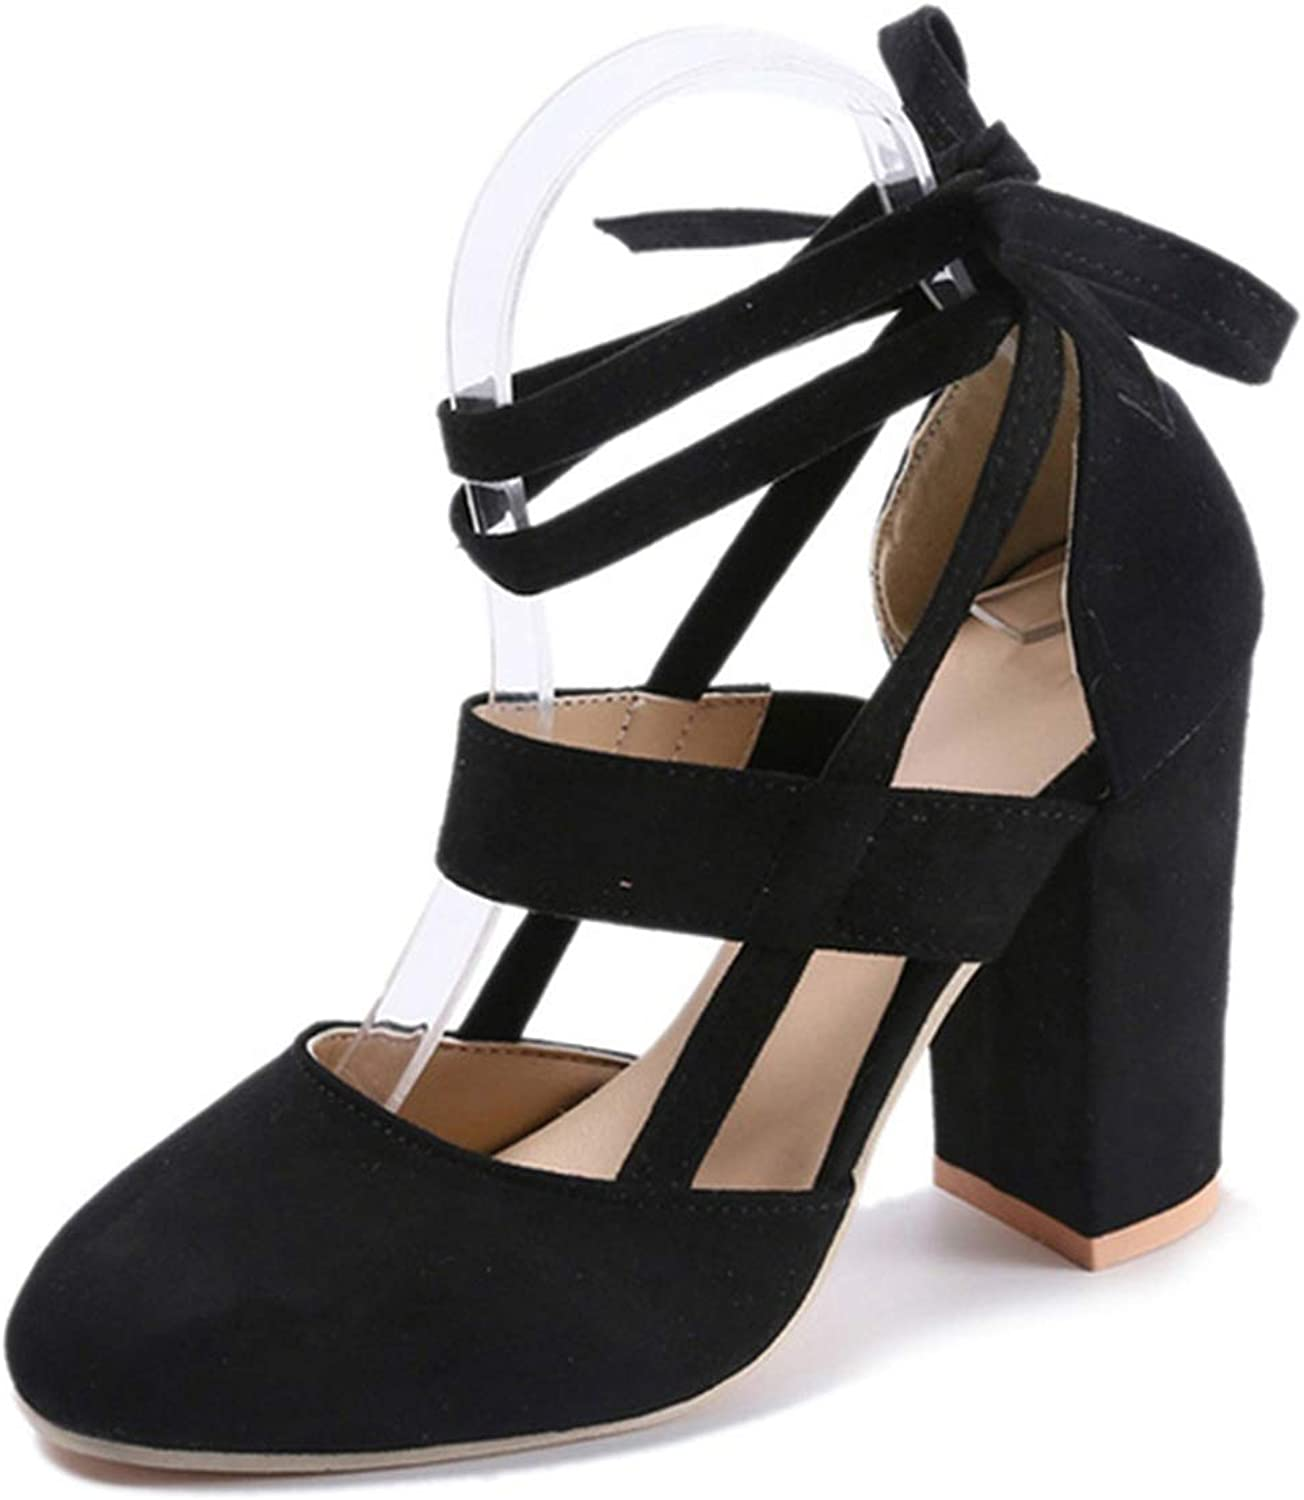 Sexy Women Open Toe Pumps Lace up Heels Sandals Woman Ankle Strap Square Cover Heel shoes